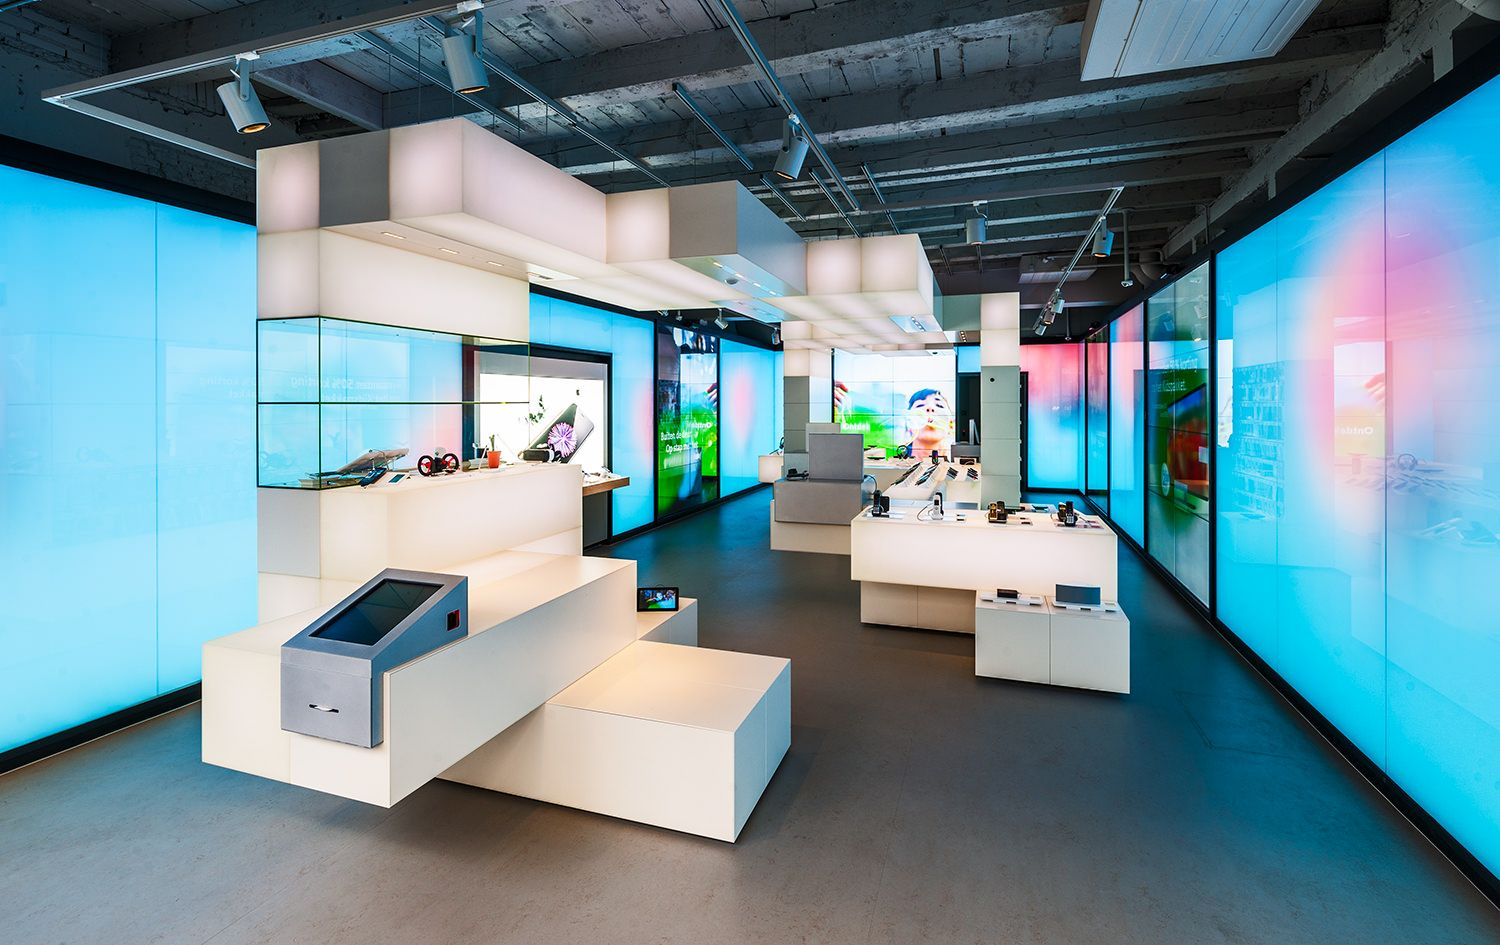 Store by riis retail aarhus denmark 187 retail design blog - Doepelstrijkers Created A New Retail Formula And 2 Concept Storer For Kpn Which Merges The Virtual And Physical Worlds For The Ultimate User Experi